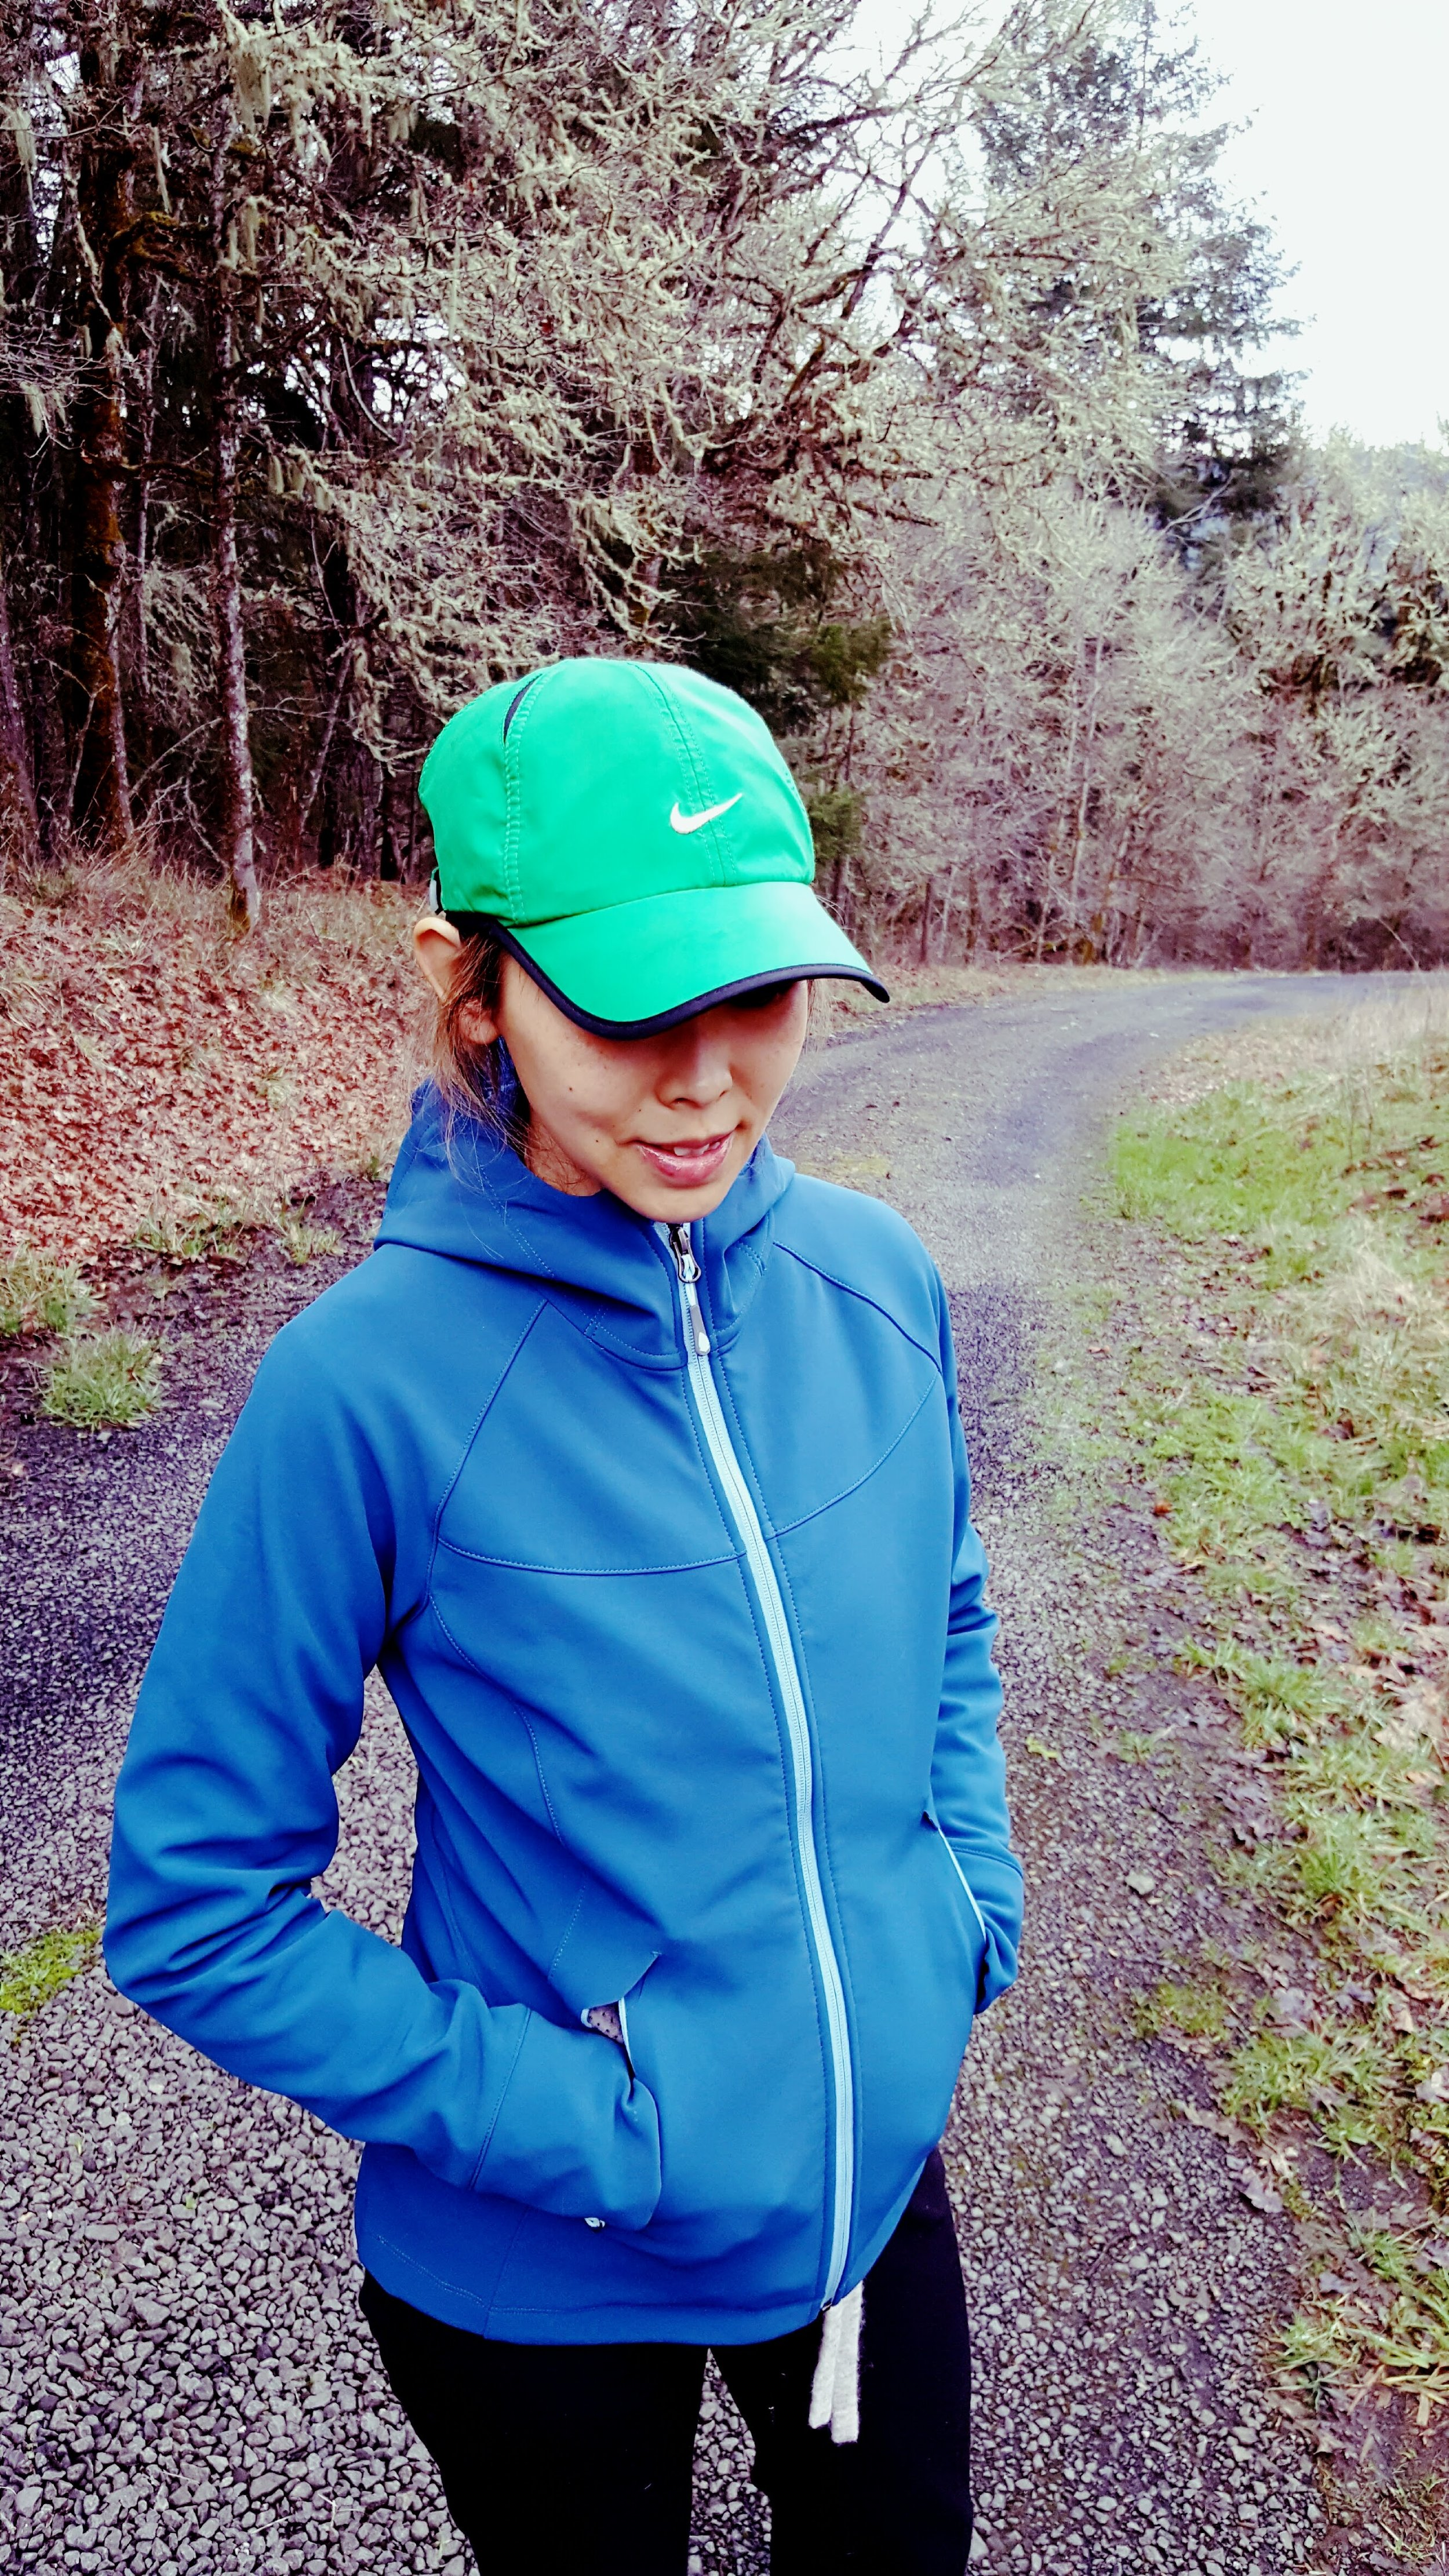 Vescent Jacket is waterproof and lined with microfleece to keep you warm!